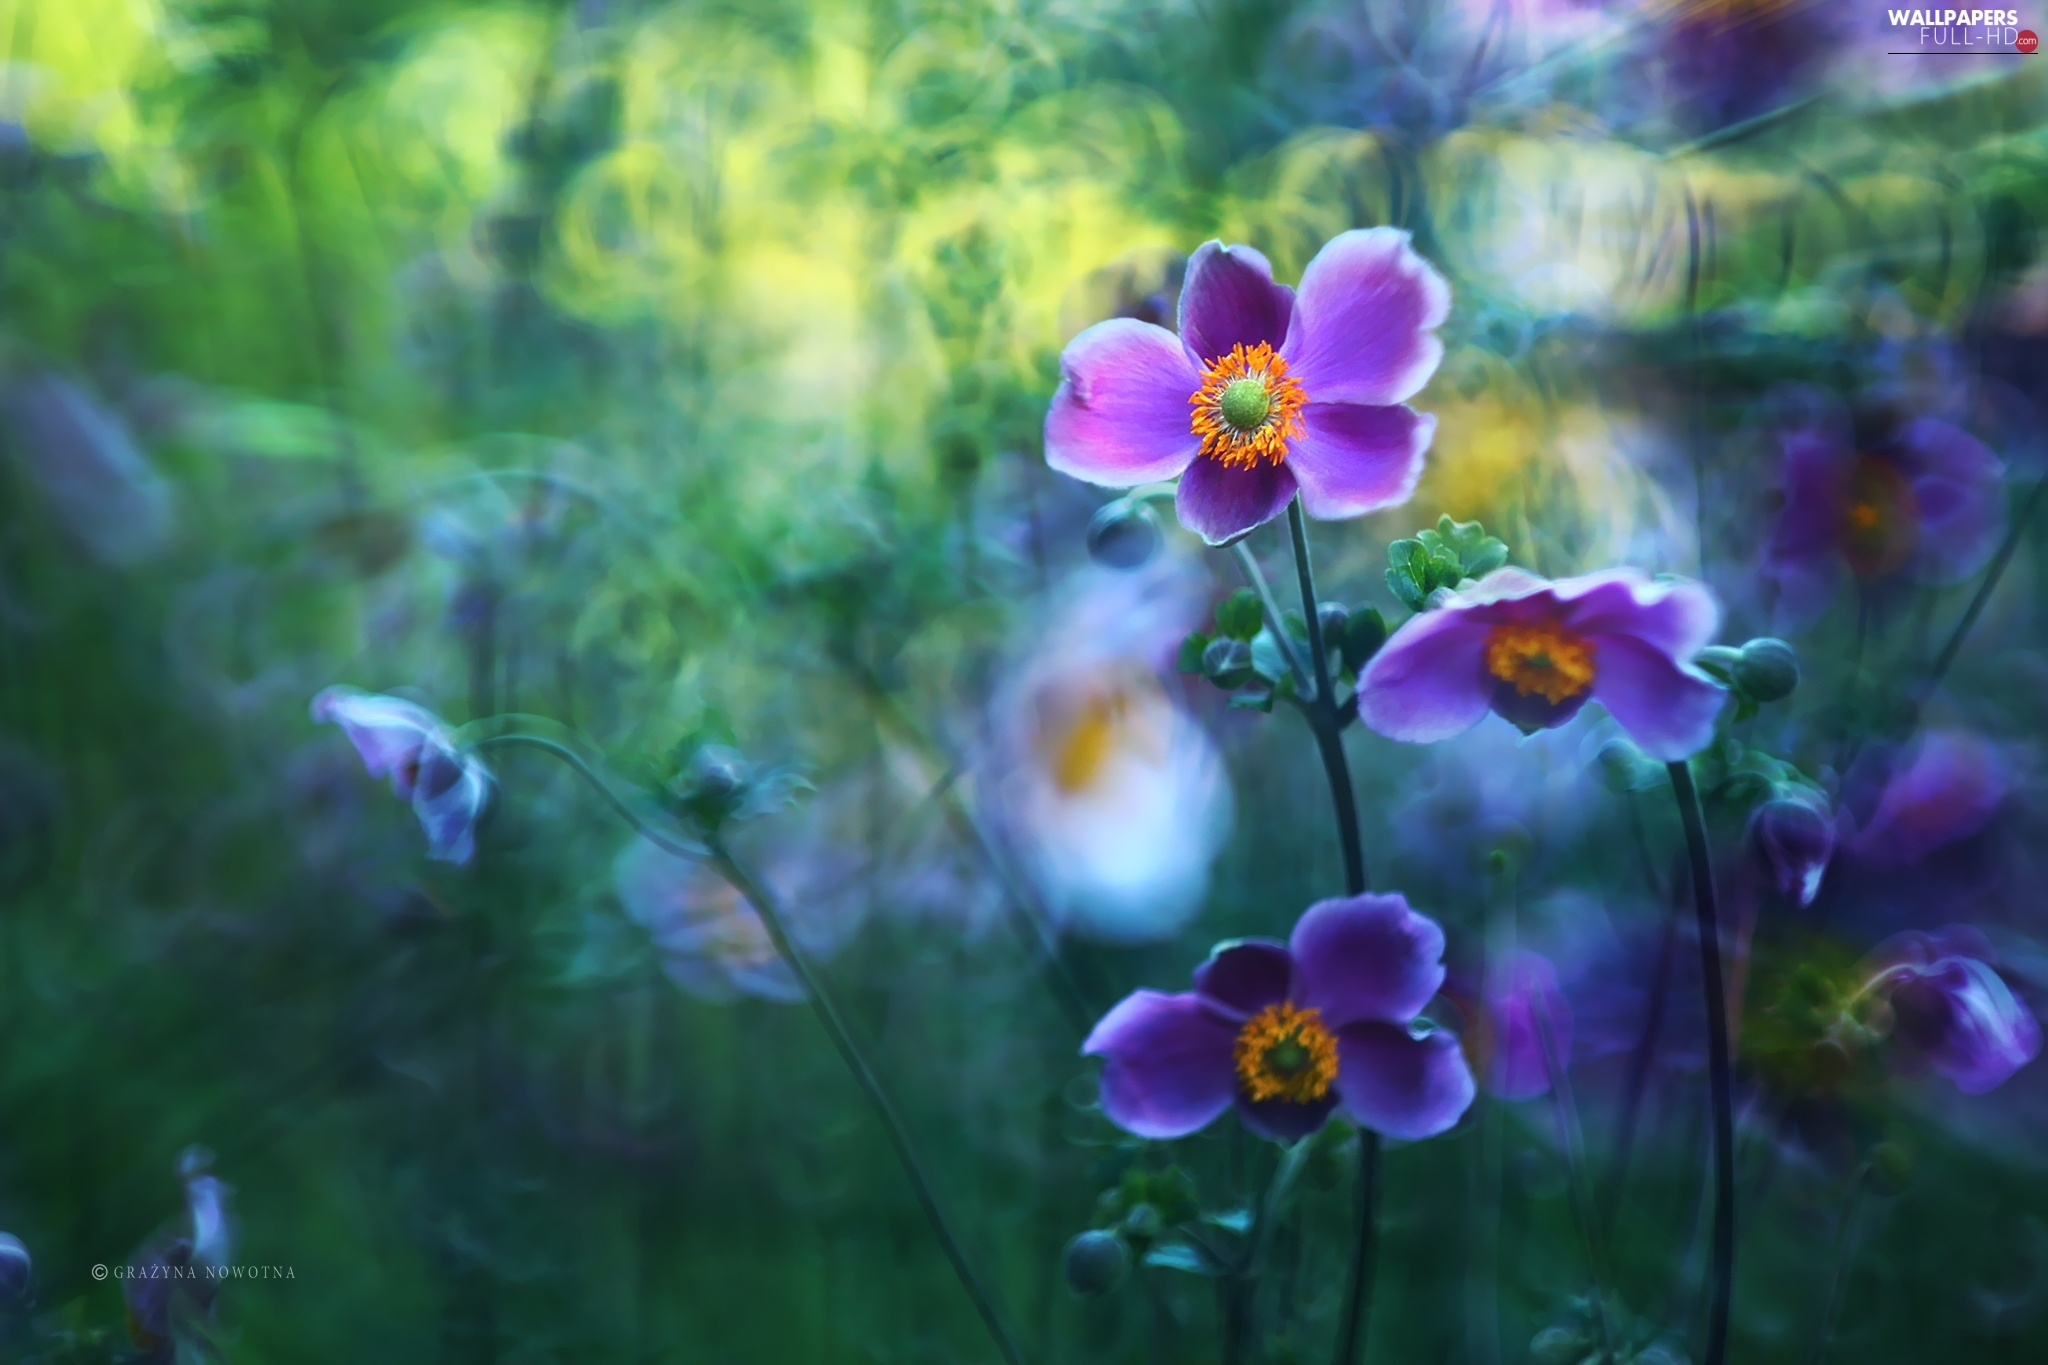 Flowers, purple, Japanese anemone